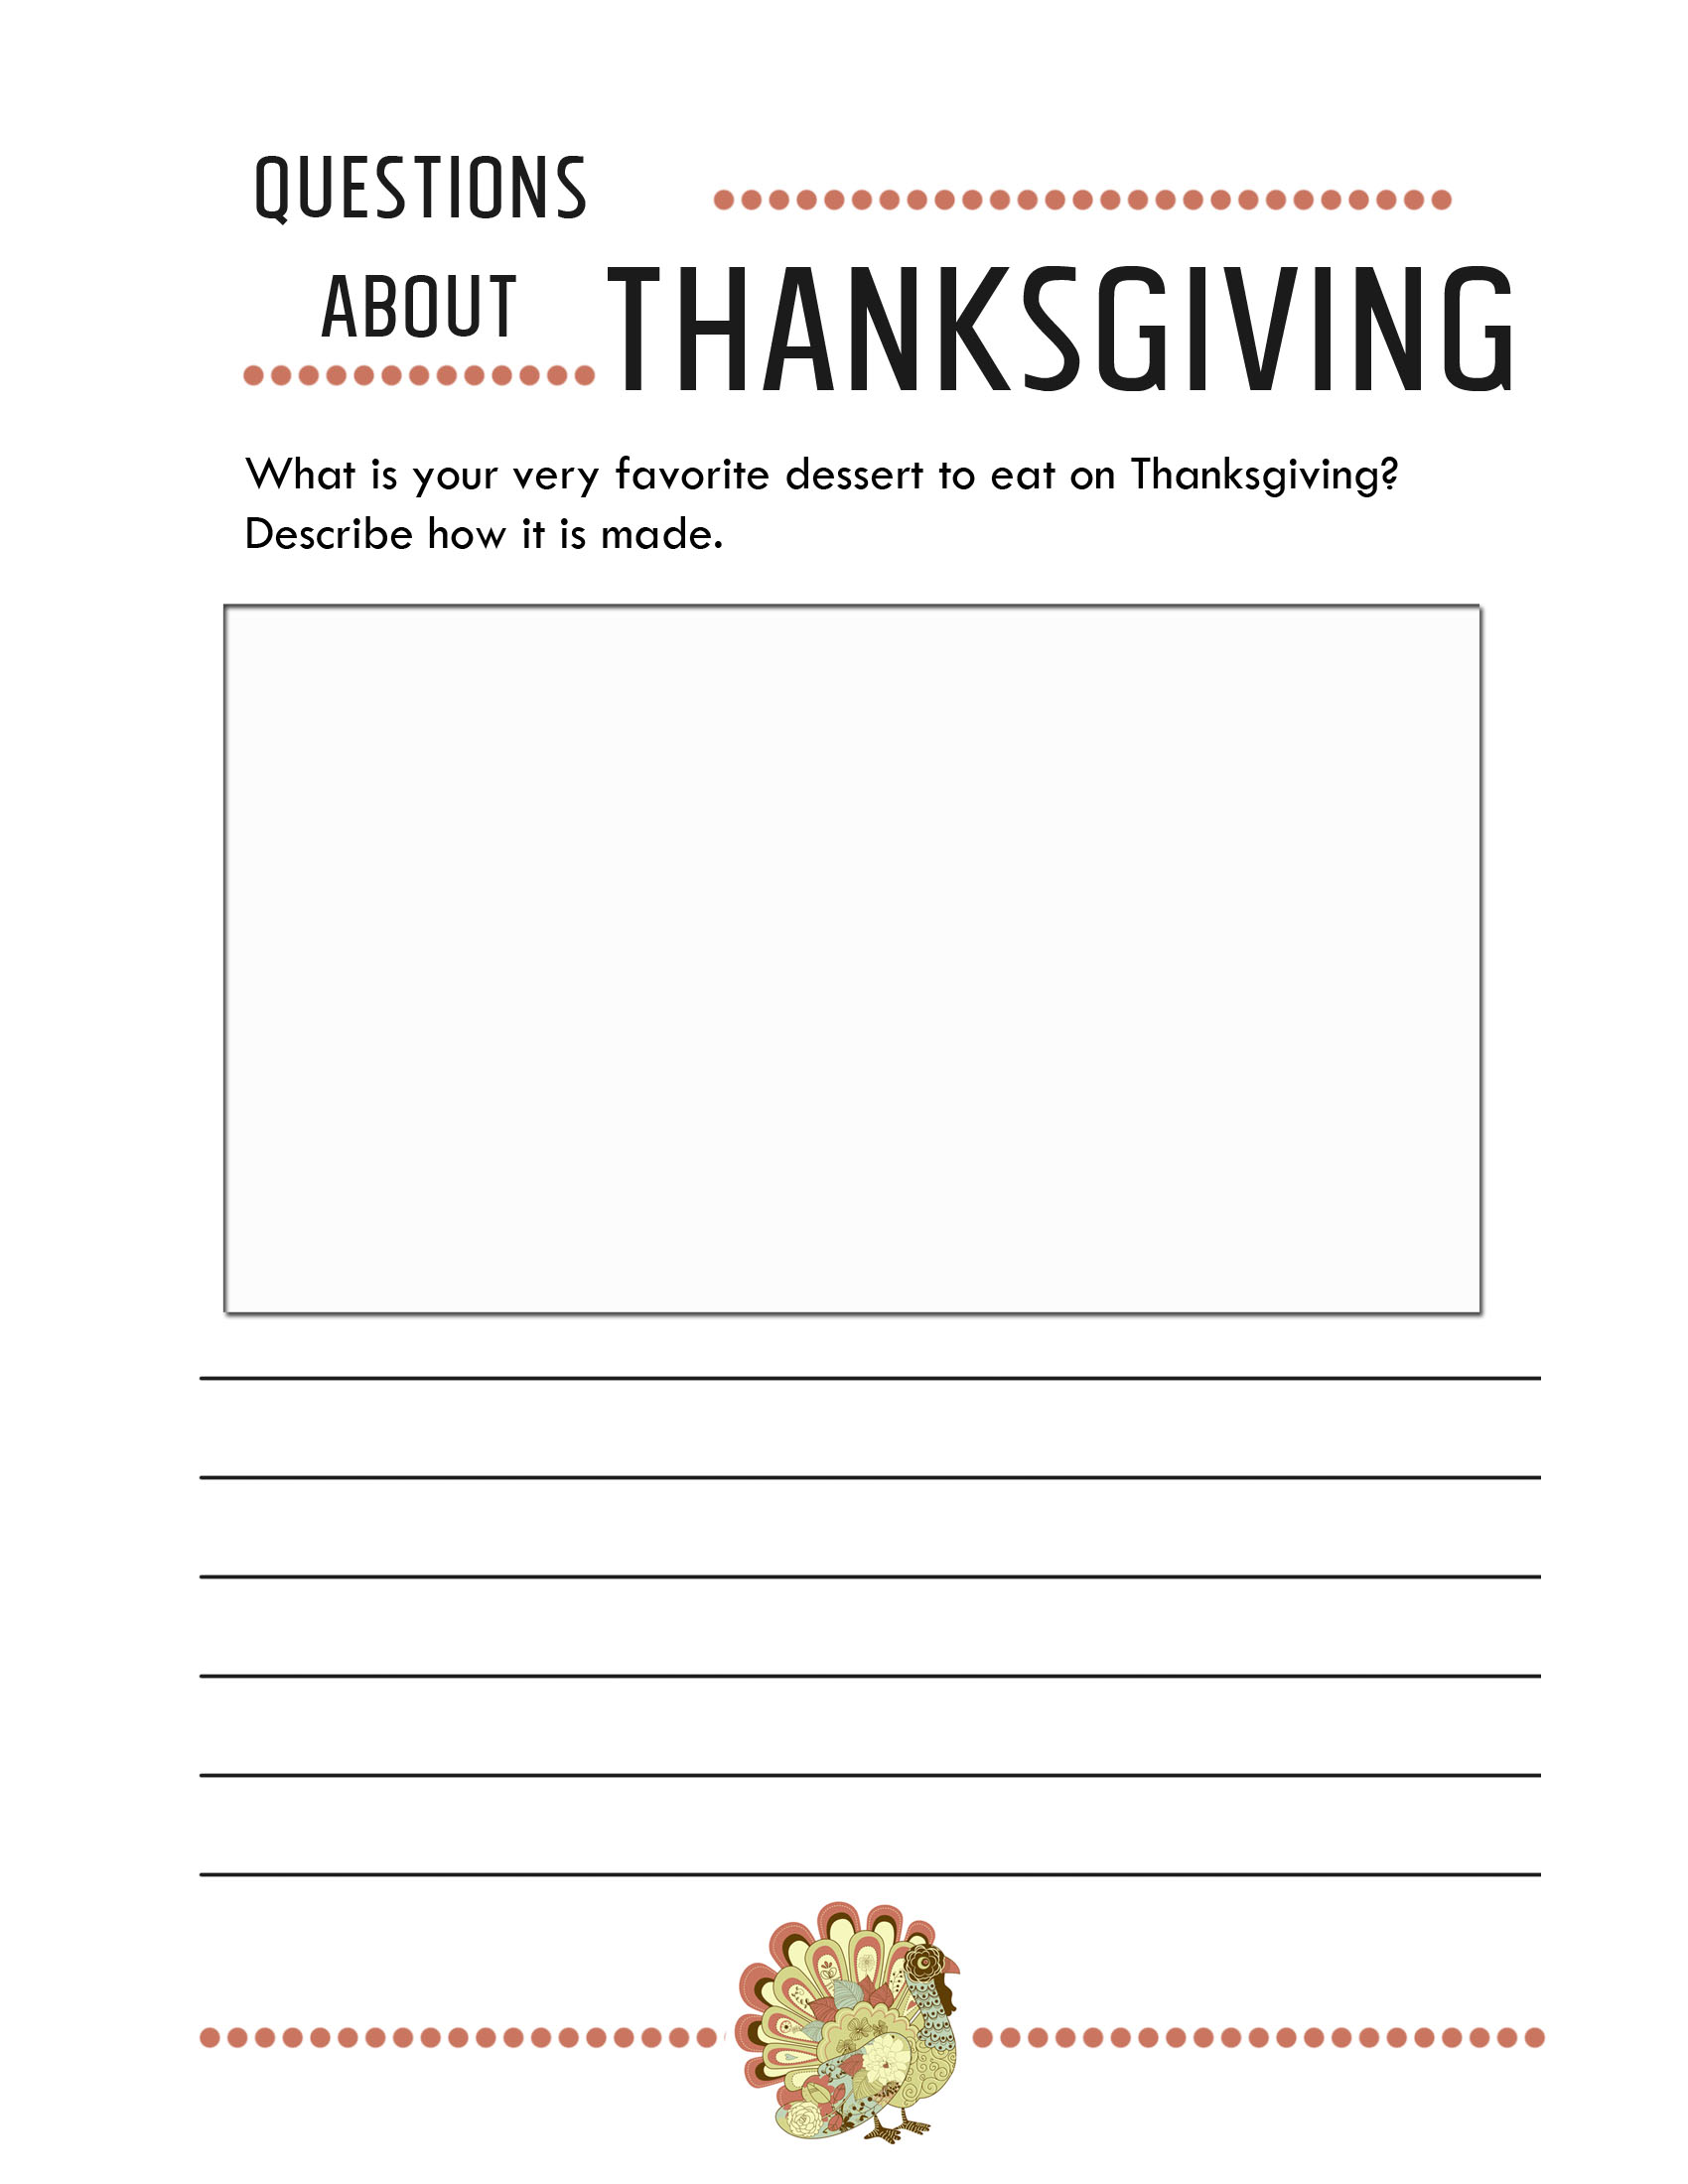 worksheet Fun Thanksgiving Worksheets thanksgiving worksheets free printables jessicalynette com writing prompts 3